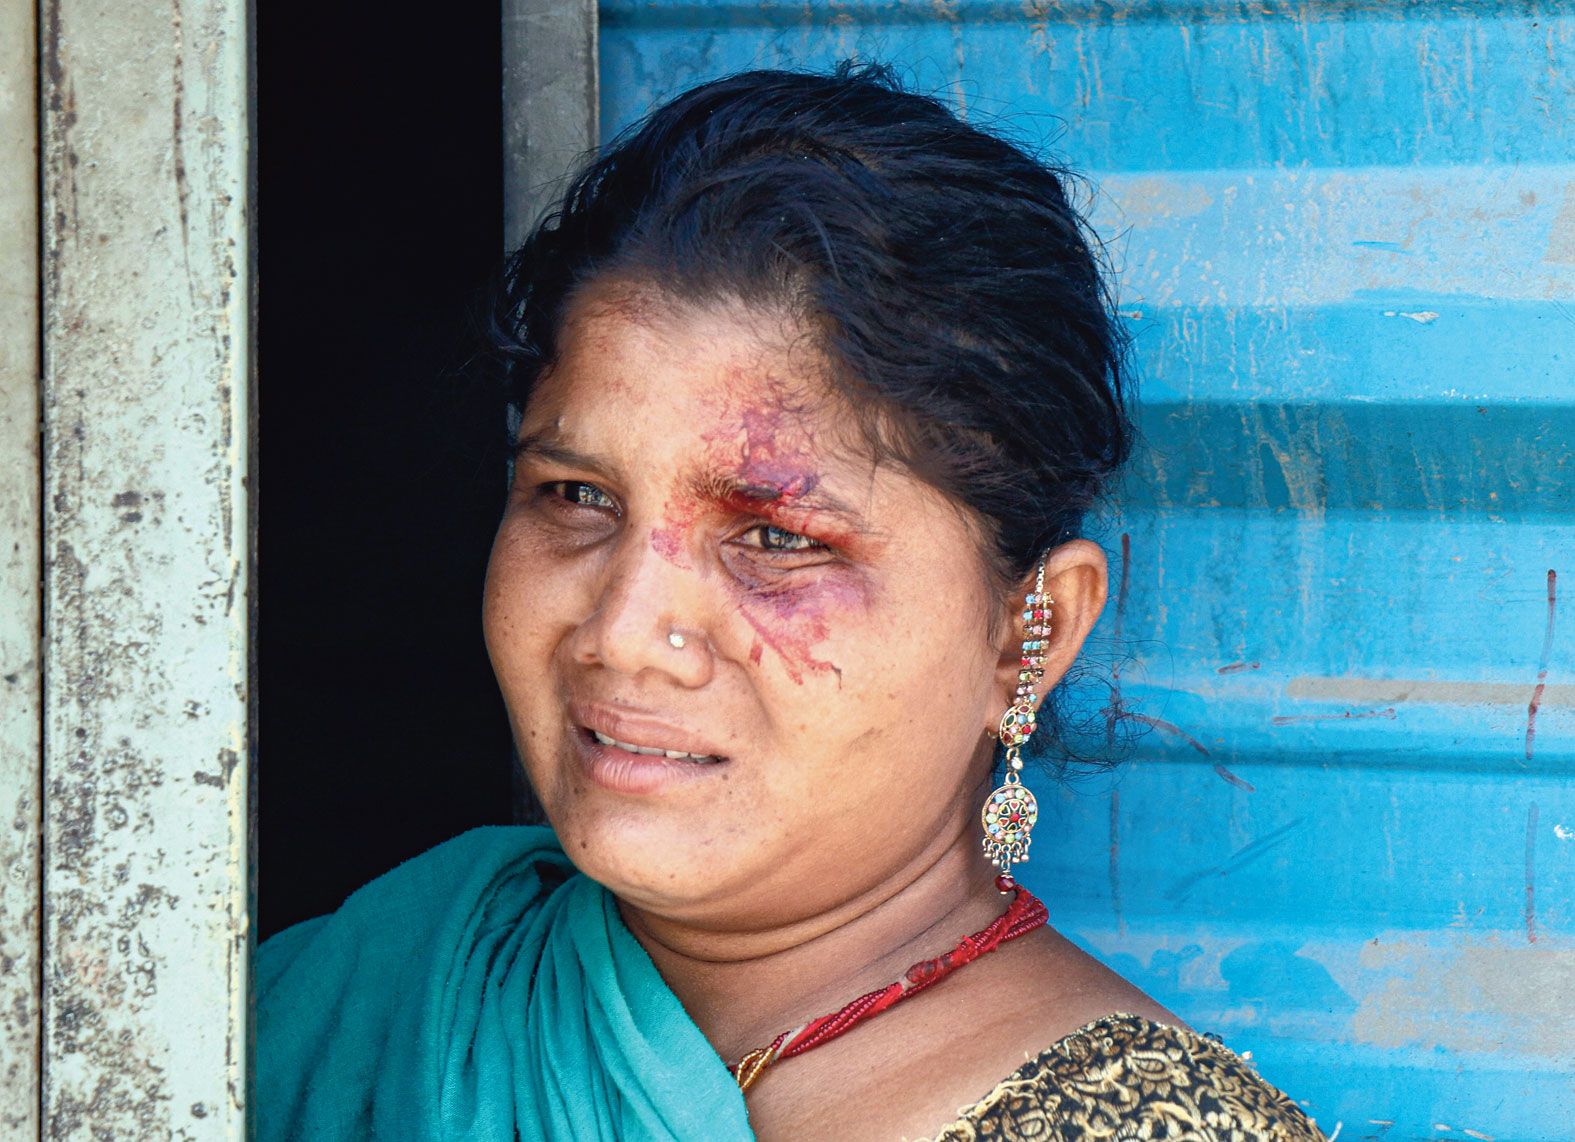 """The wife of a migrant worker injured in a protest in Ahmedabad on Monday. Police fired tear gas and rained lathis to disperse a crowd of migrant workers who had gathered on an Ahmedabad road to demand to be allowed to return home. Around 100 were detained, police said.  Joint commissioner of police Amit Vishwakarma said the migrant workers from different states had been asking the local authorities for many days to send them back home. """"Around 400 to 500 migrant workers  live at the labour colony and work at a nearby construction site. They are demanding since long that they be sent back. When  some of them gathered on the road on  Monday over the same demand, the police asked them to go back and have patience,"""" he said.  """"However, they suddenly got angry and engaged in stone pelting. It was a sudden outburst... not directed at police."""""""